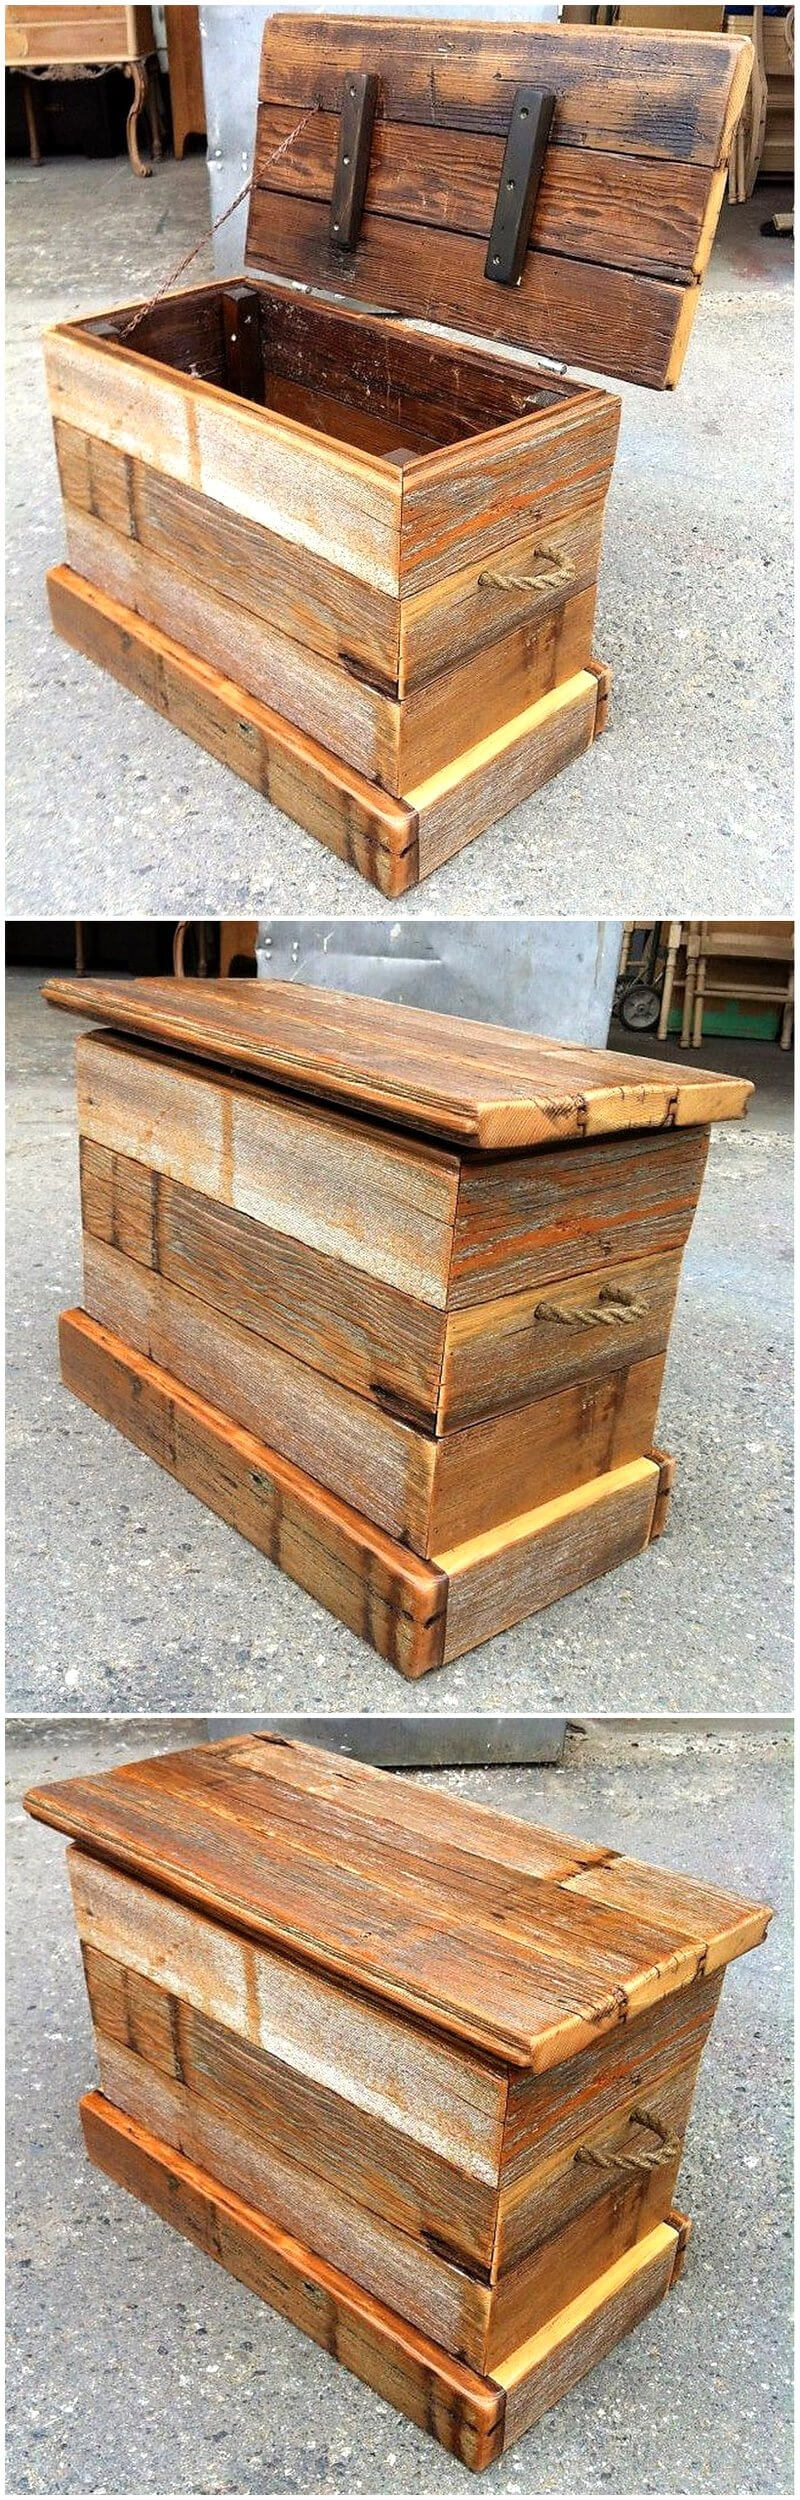 Great Ideas For Reusing or Recycling Wood Pallets